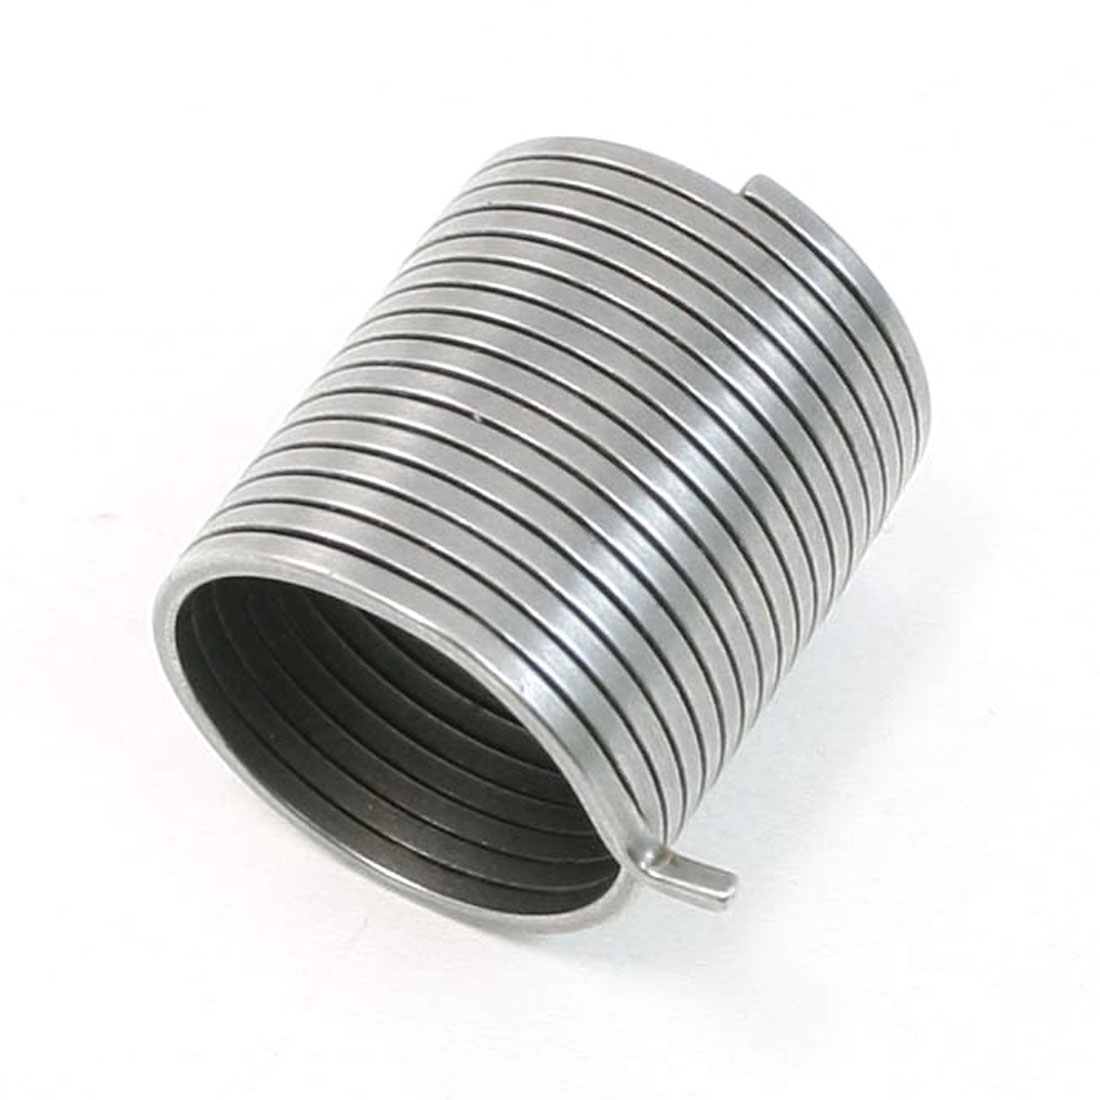 Metal 19mm x 22mm x 25mm Spiral Spring Cluth Clutch for Washing Machine